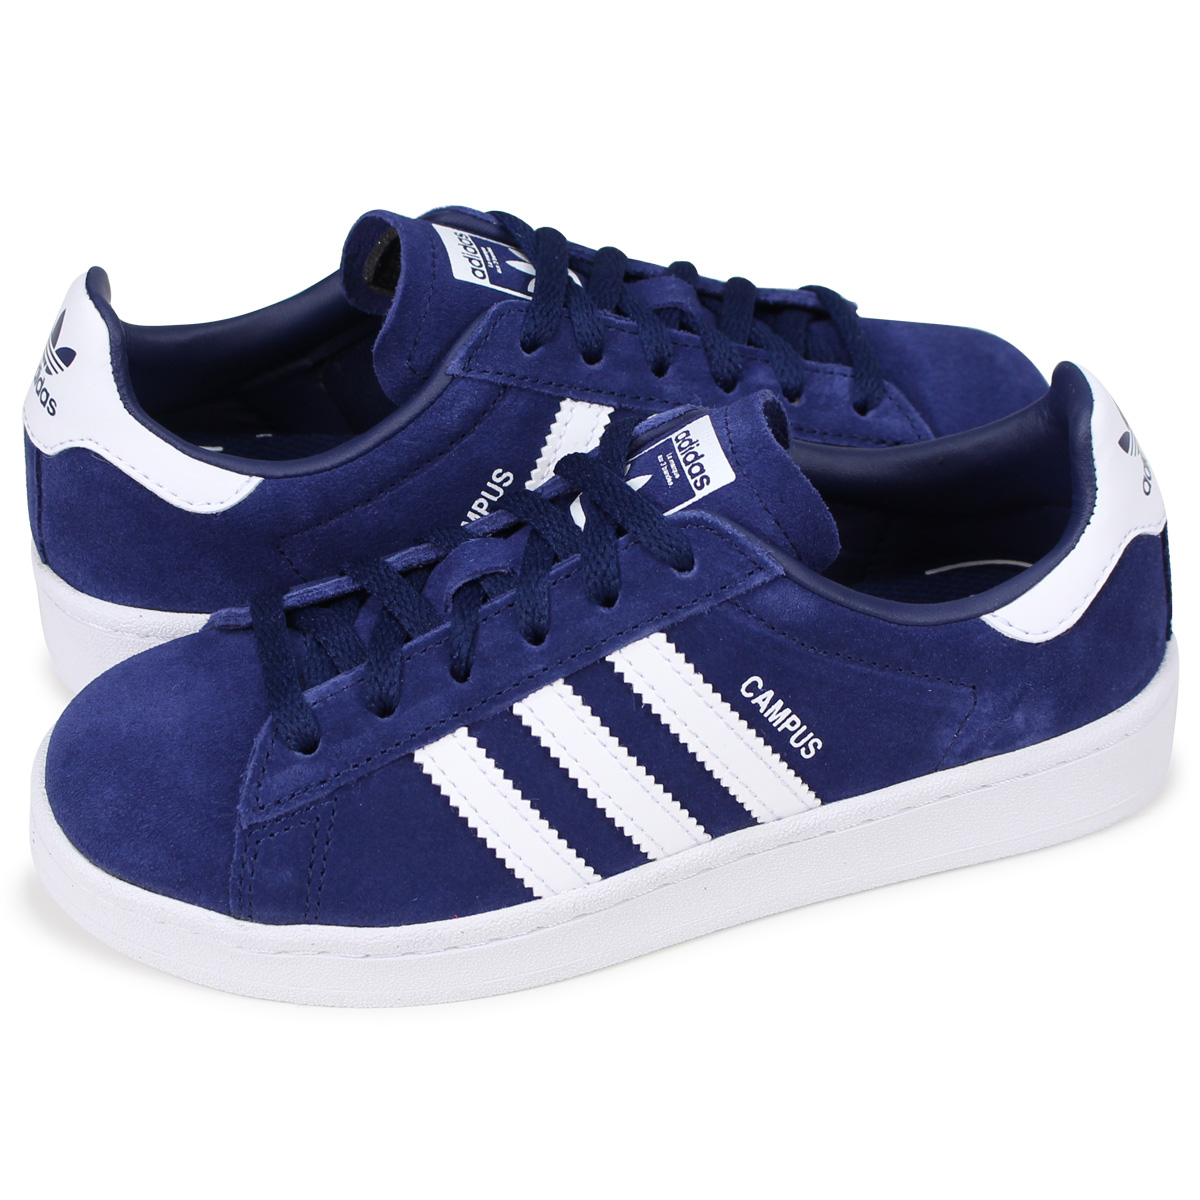 adidas Originals CAMPUS C Adidas original scan pass kids sneakers BY9593 blue [load planned Shinnyu load in reservation product 8/14 containing]